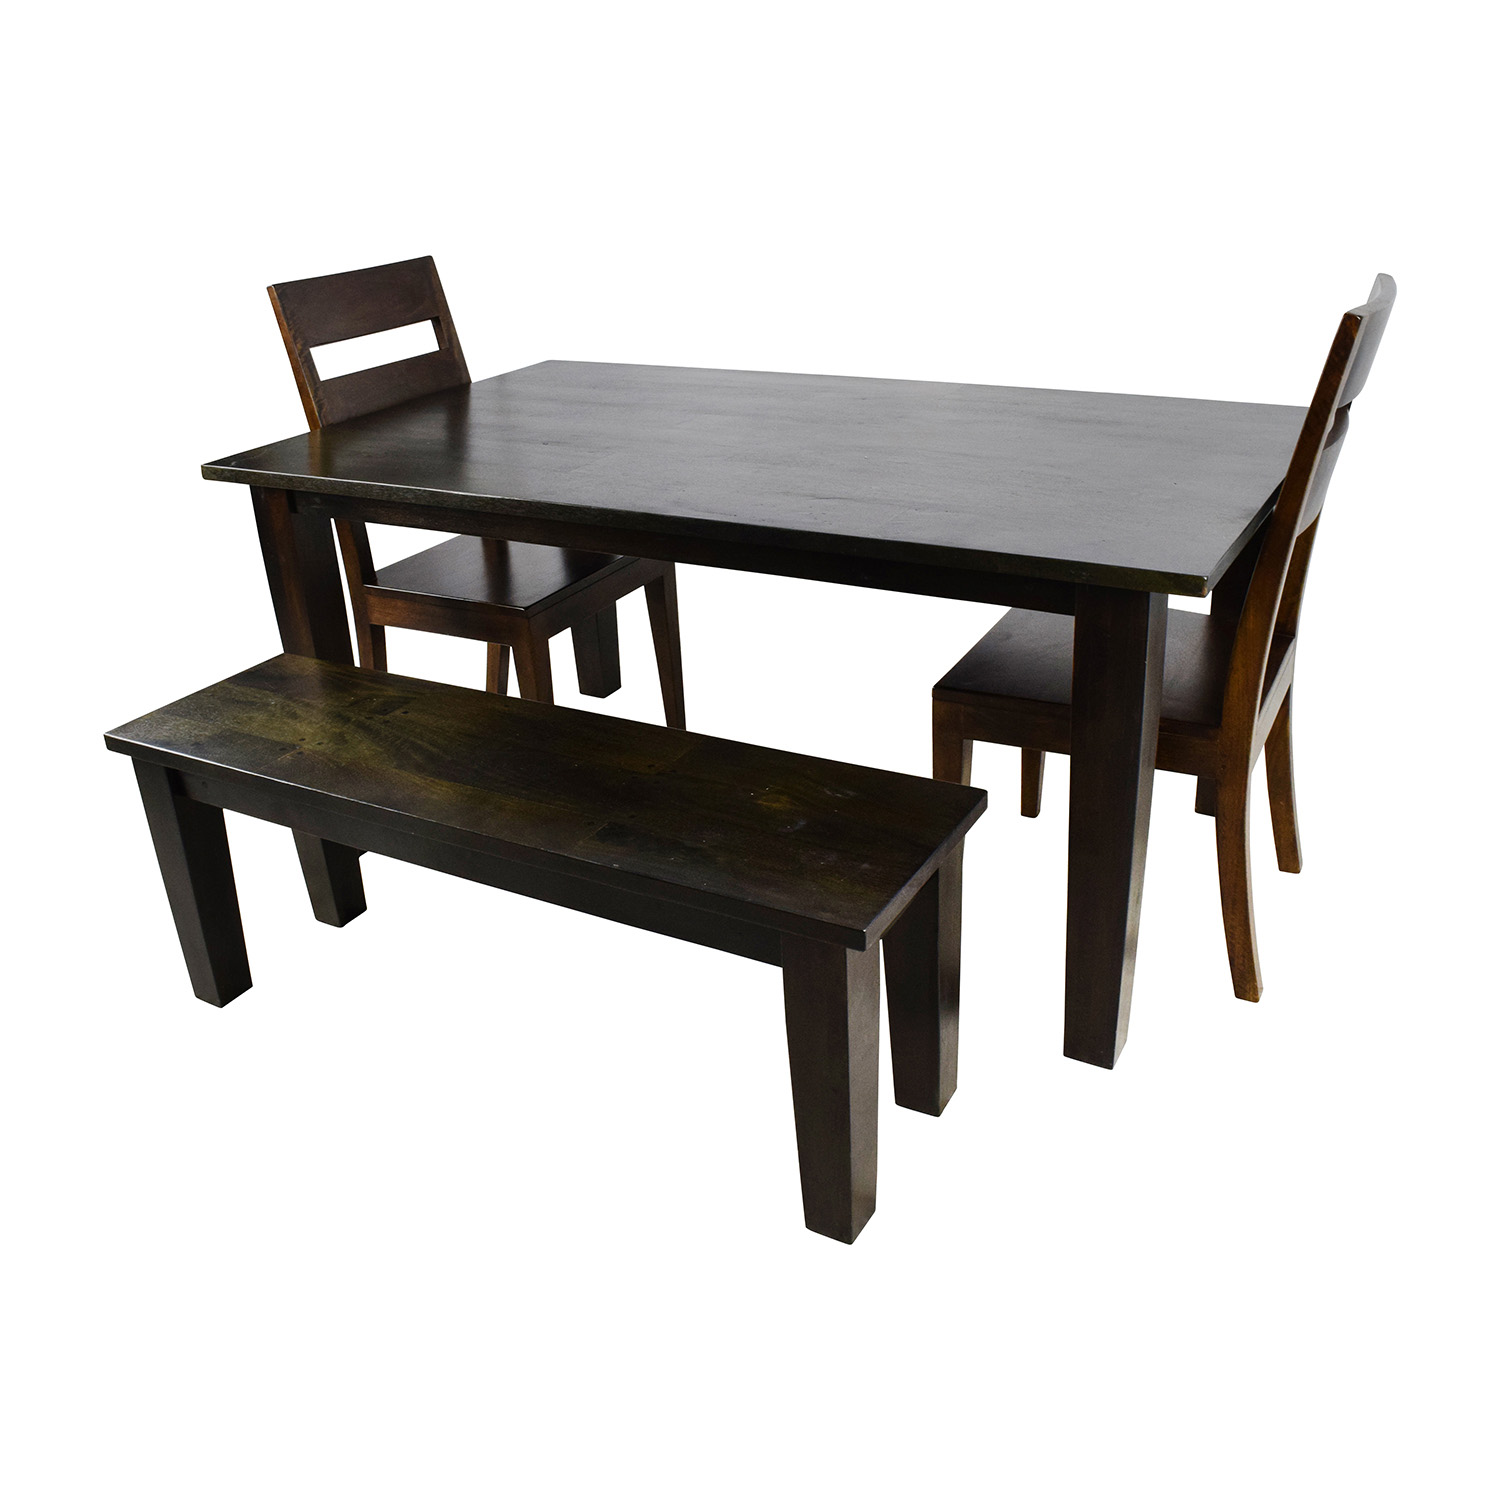 54% OFF - Crate & Barrel Crate & Barrel Basque Java Dining Table Set /  Tables